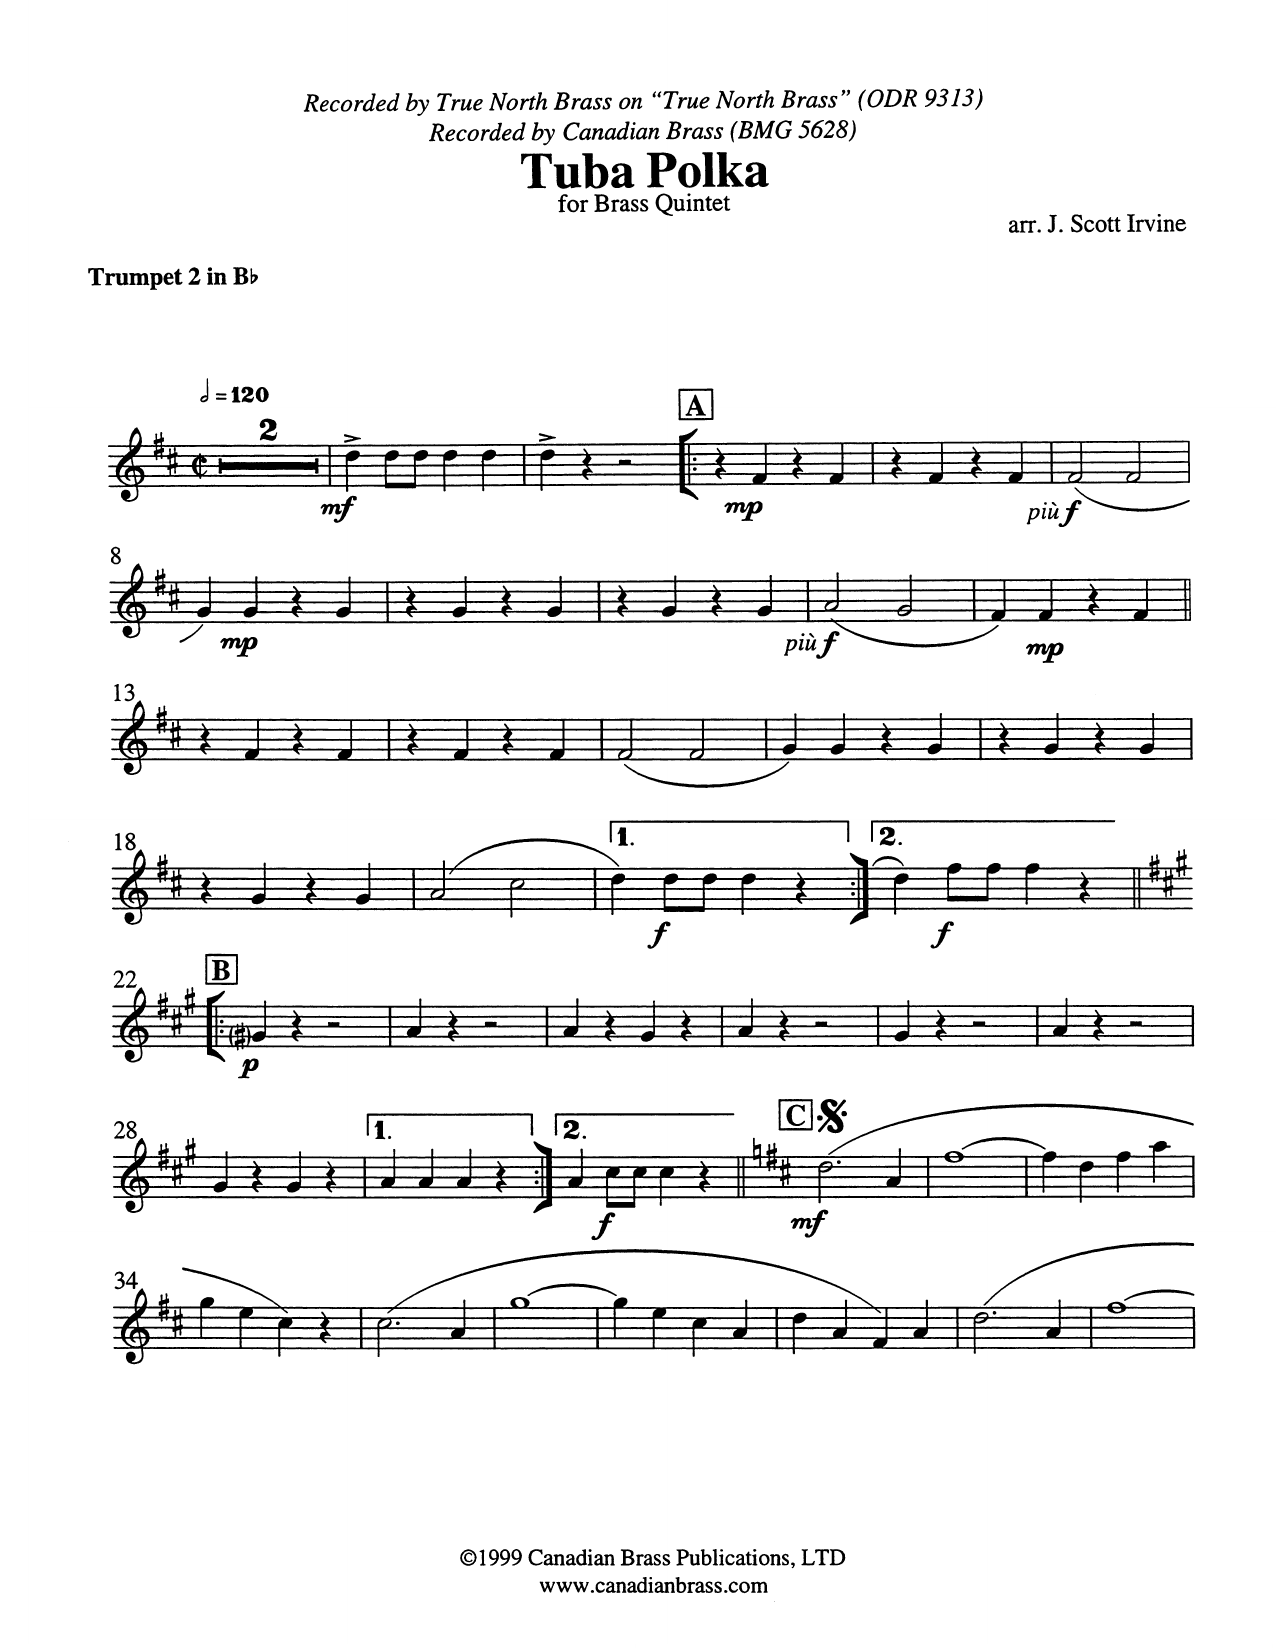 Tuba Polka - Bb Trumpet 2 (Brass Quintet) Partition Digitale